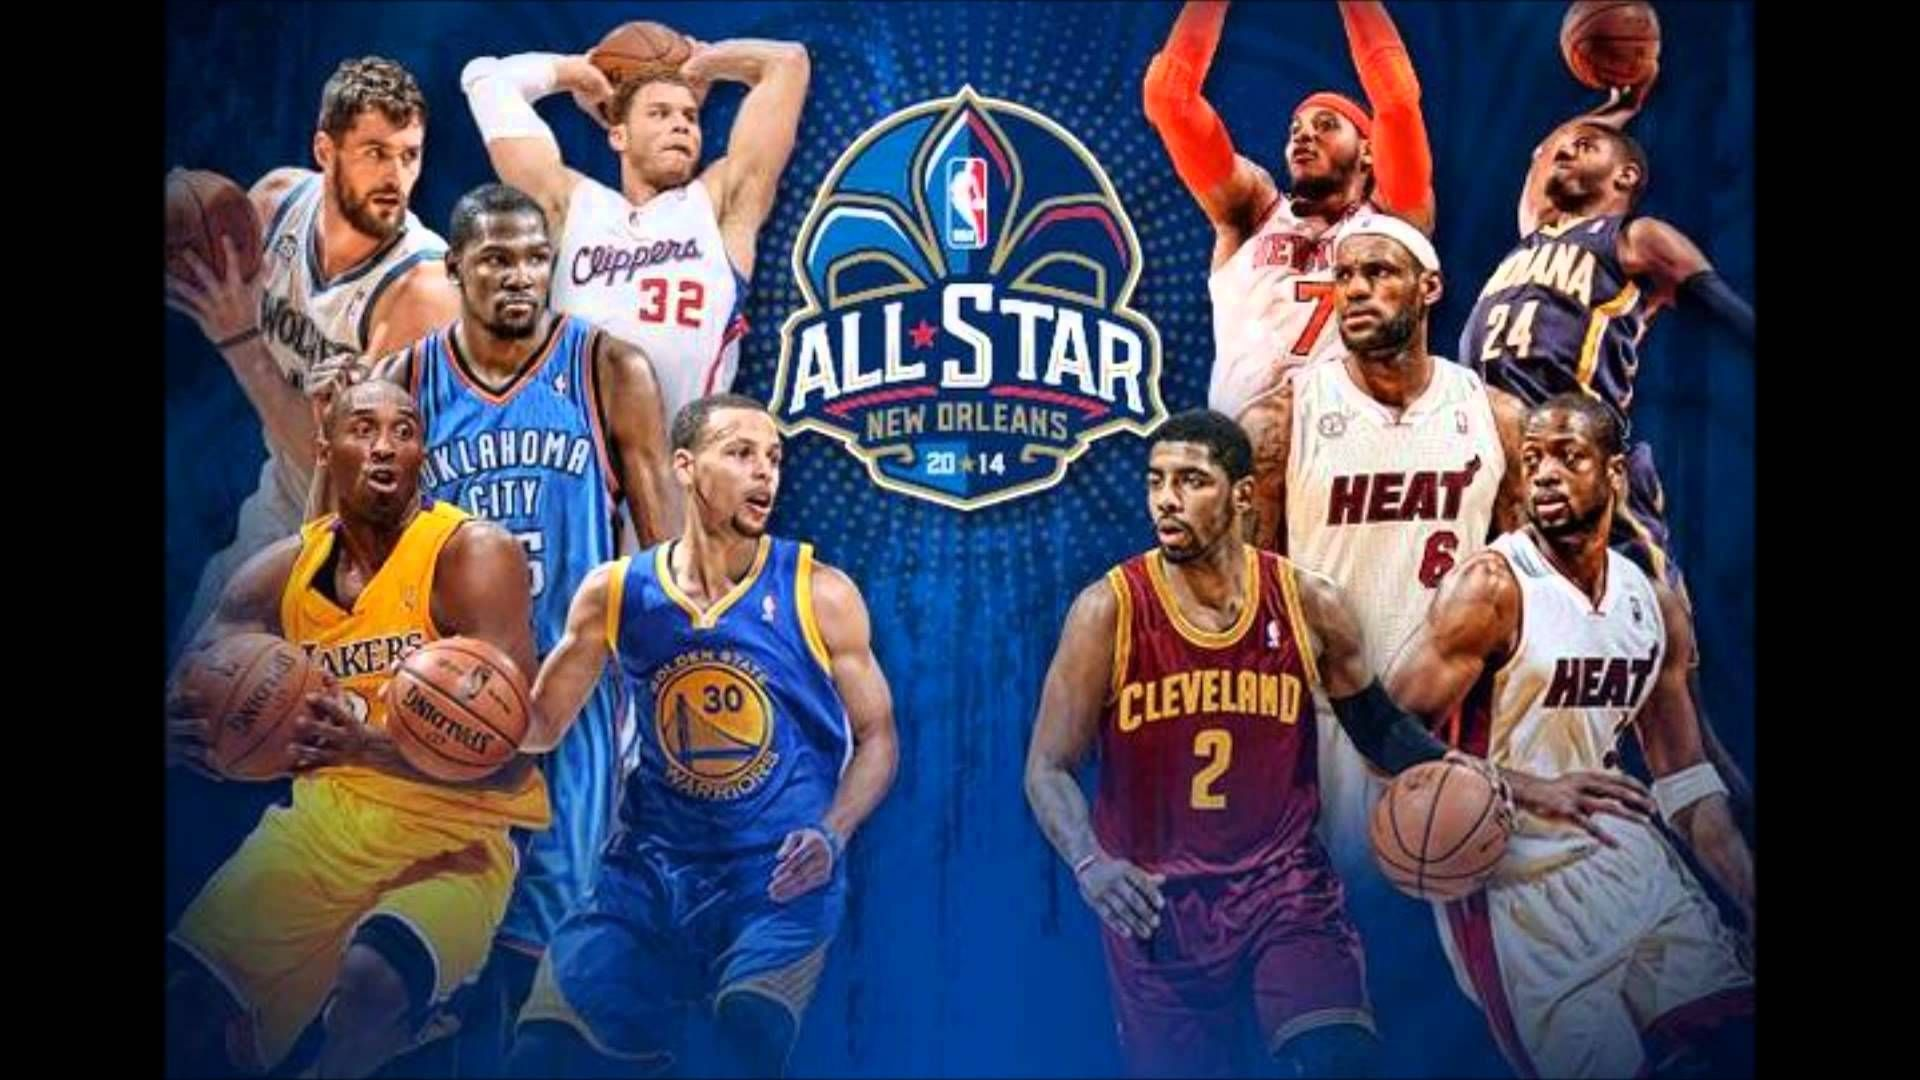 Nba All Star Teams Google Search All Star Love And Basketball Nba Players